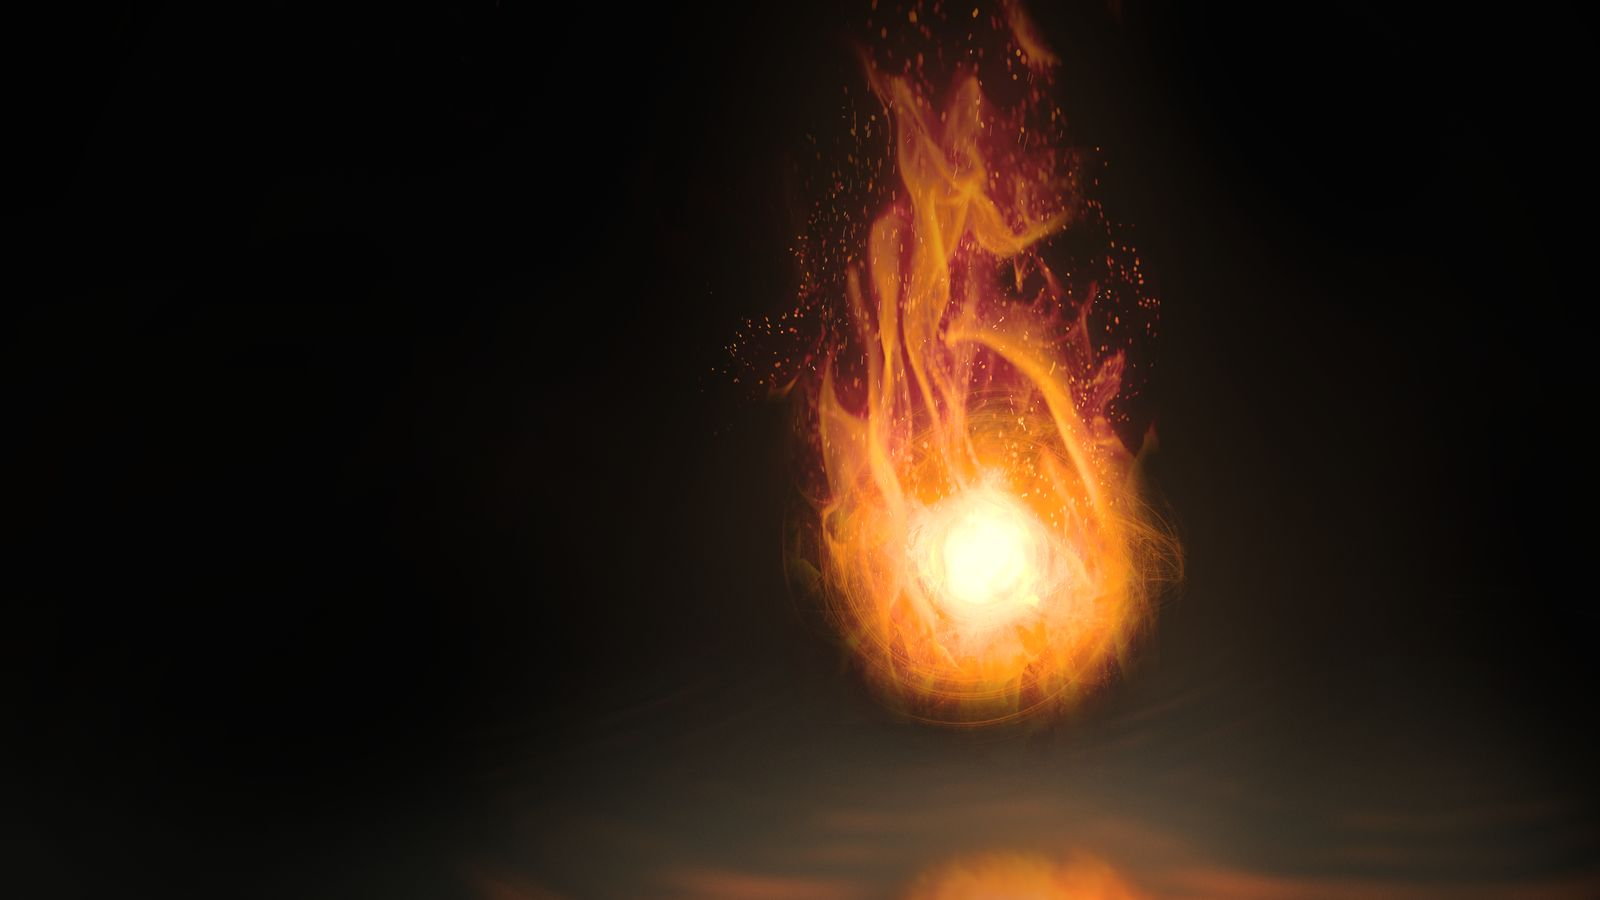 Fireball Wallpaper 2 by Dr3aMox 1600x900